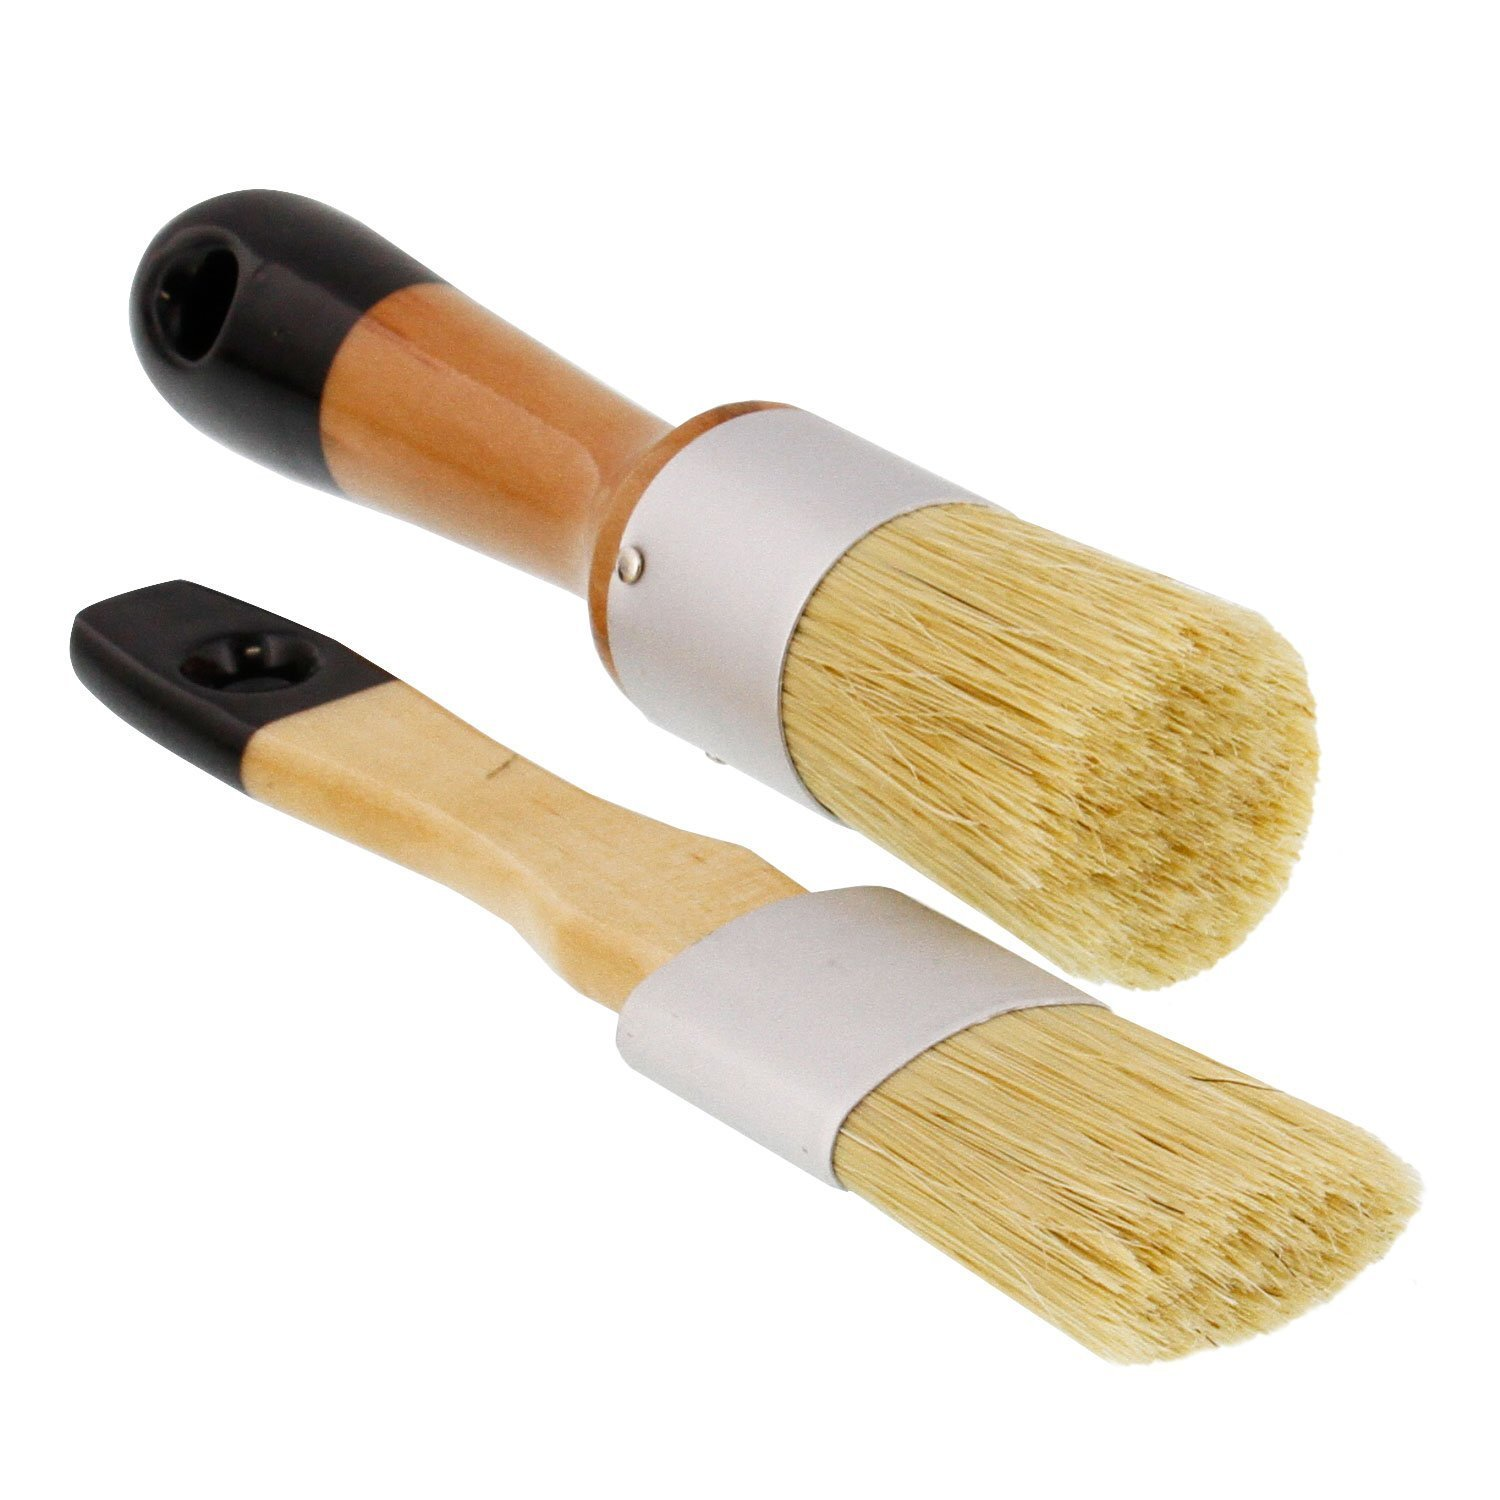 US Art Supply 2-Piece Multi Use Oval and Round Chalk, Wax and Stencil Brushes for Chairs, Dressers, Cabinets and other Wood Furniture - 100% Natural Bristles, Lightweight and Rust Resistant by US Art Supply